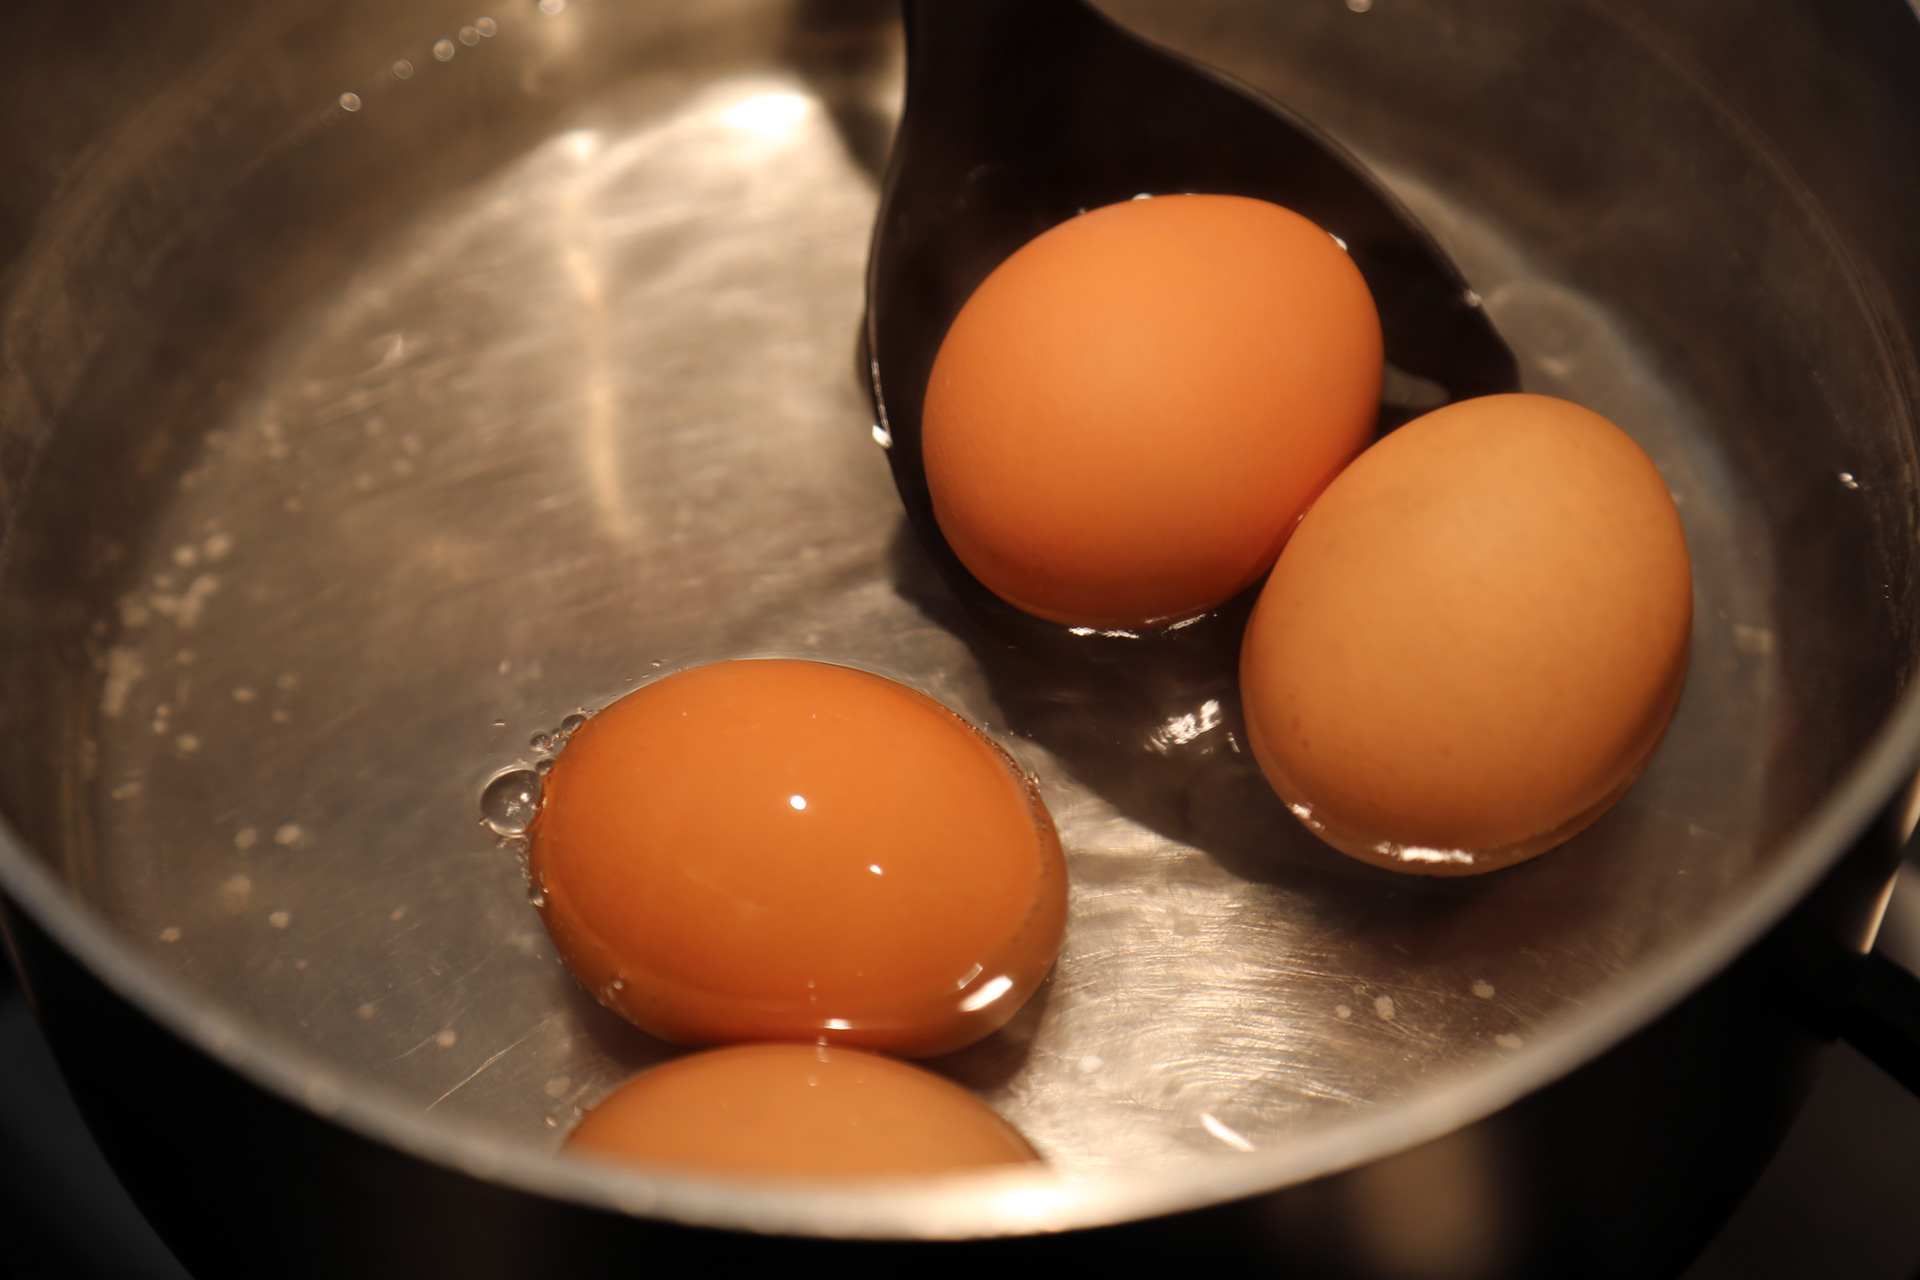 Gently lower the eggs into the simmering water using the slotted spoon.